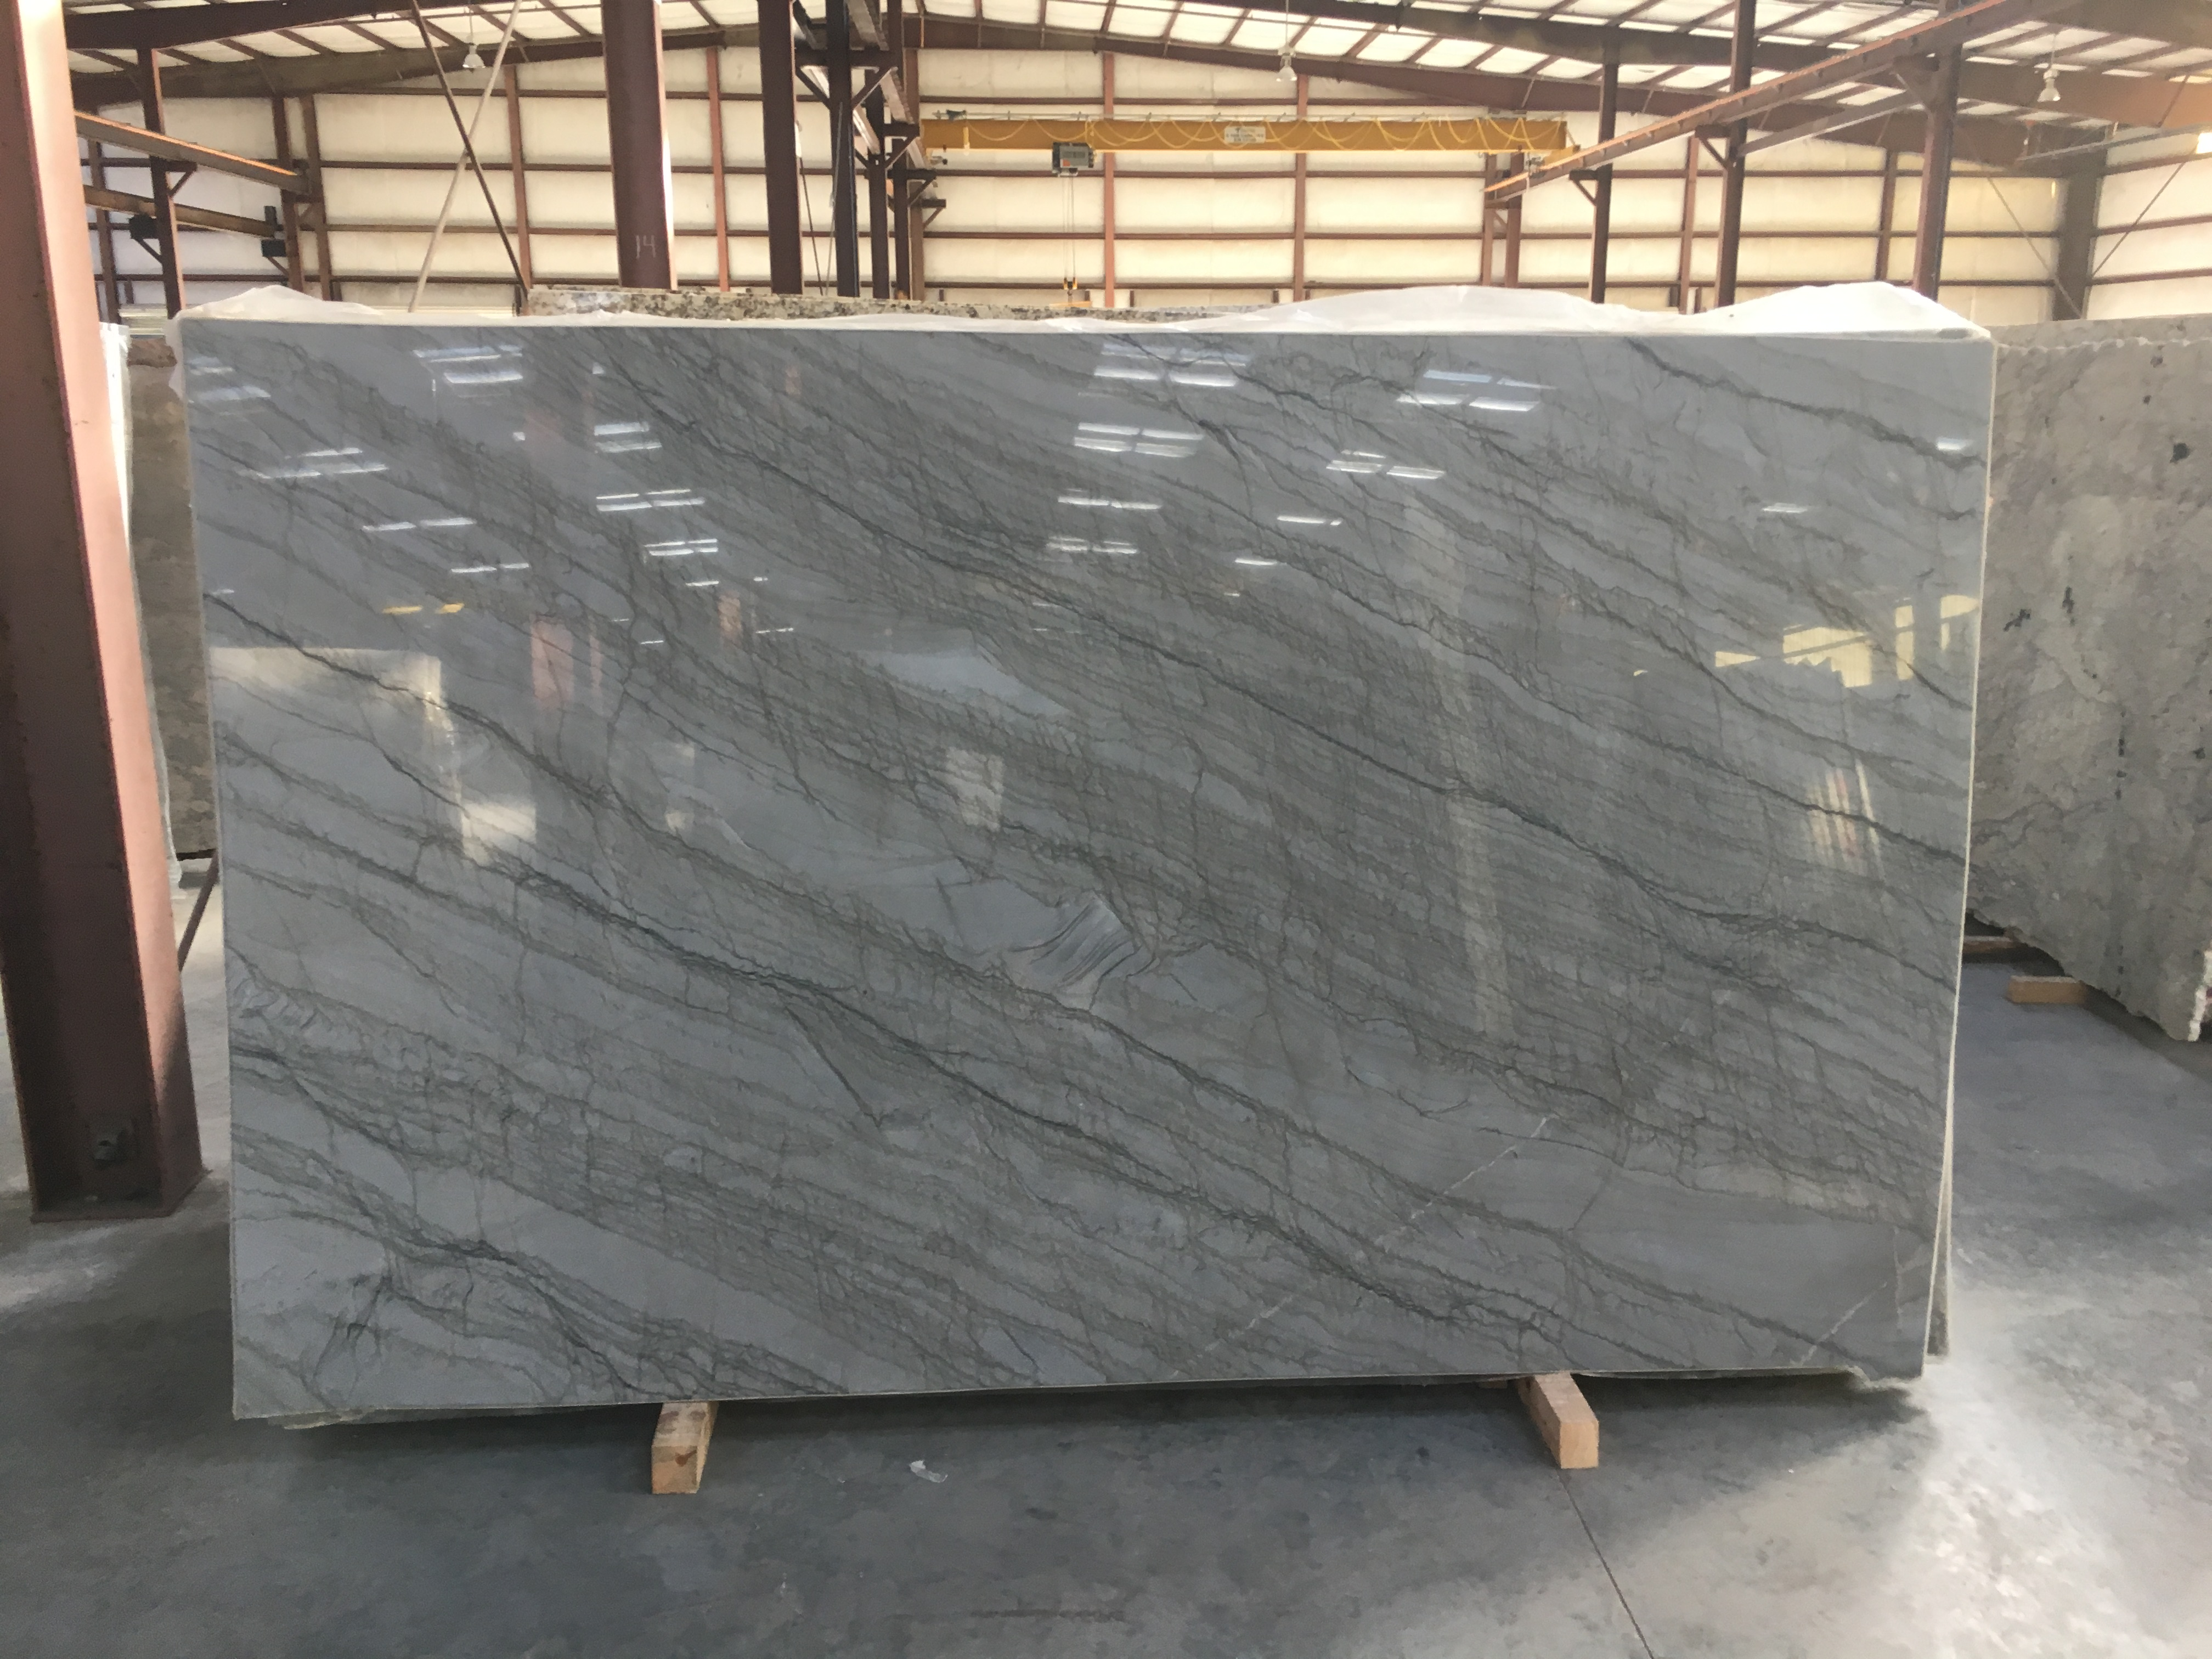 "Product Name: ARGENTO QUARTZITE 3CM   Lot #: UNIQ3178    Avg. size: 122.666666666667"" X 74.6666666666667"""